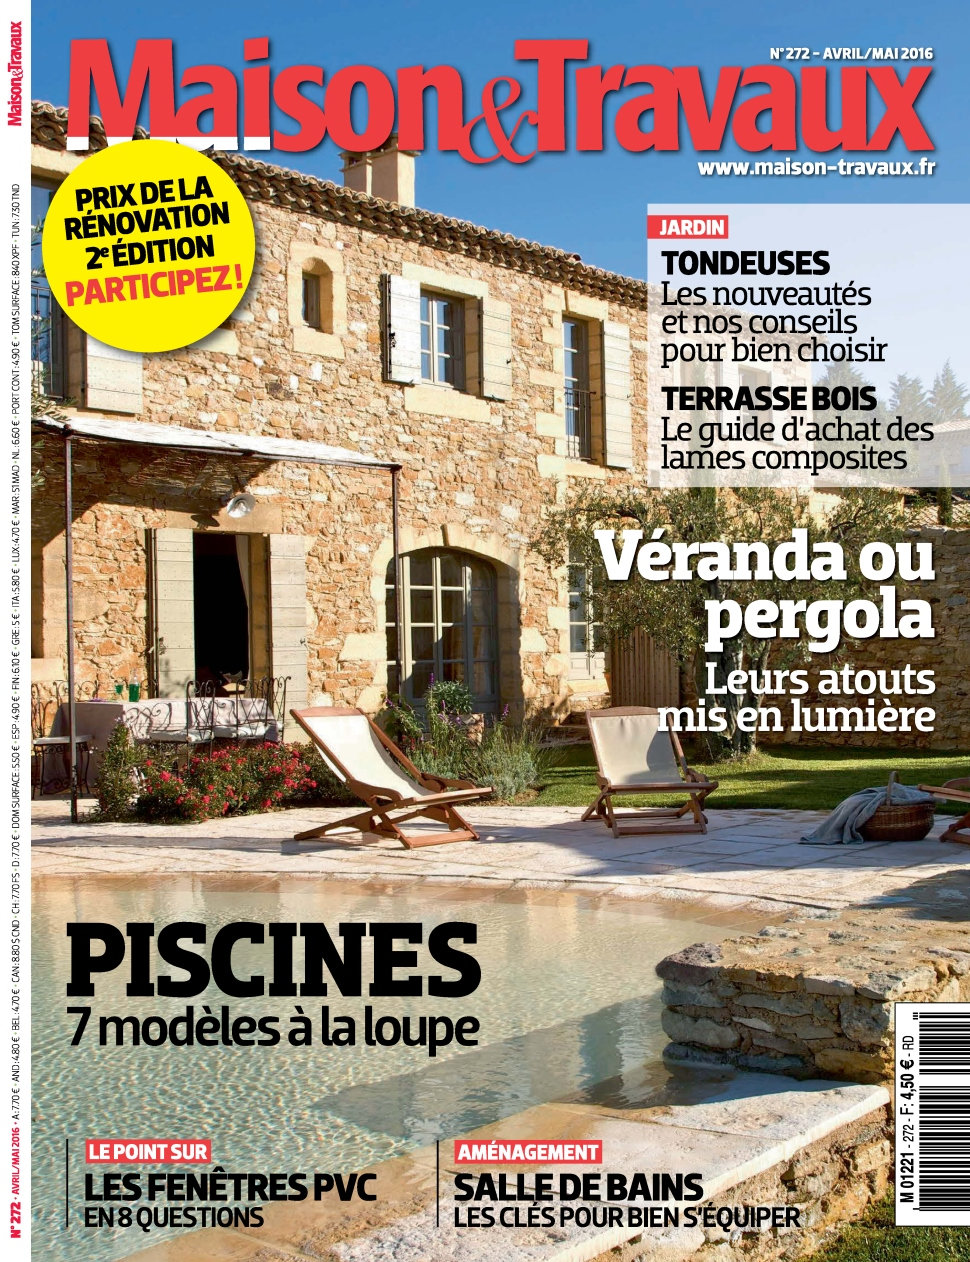 Maison & Travaux Magazine maison & travaux n°272 - avril/mai 2016 » telecharger livres